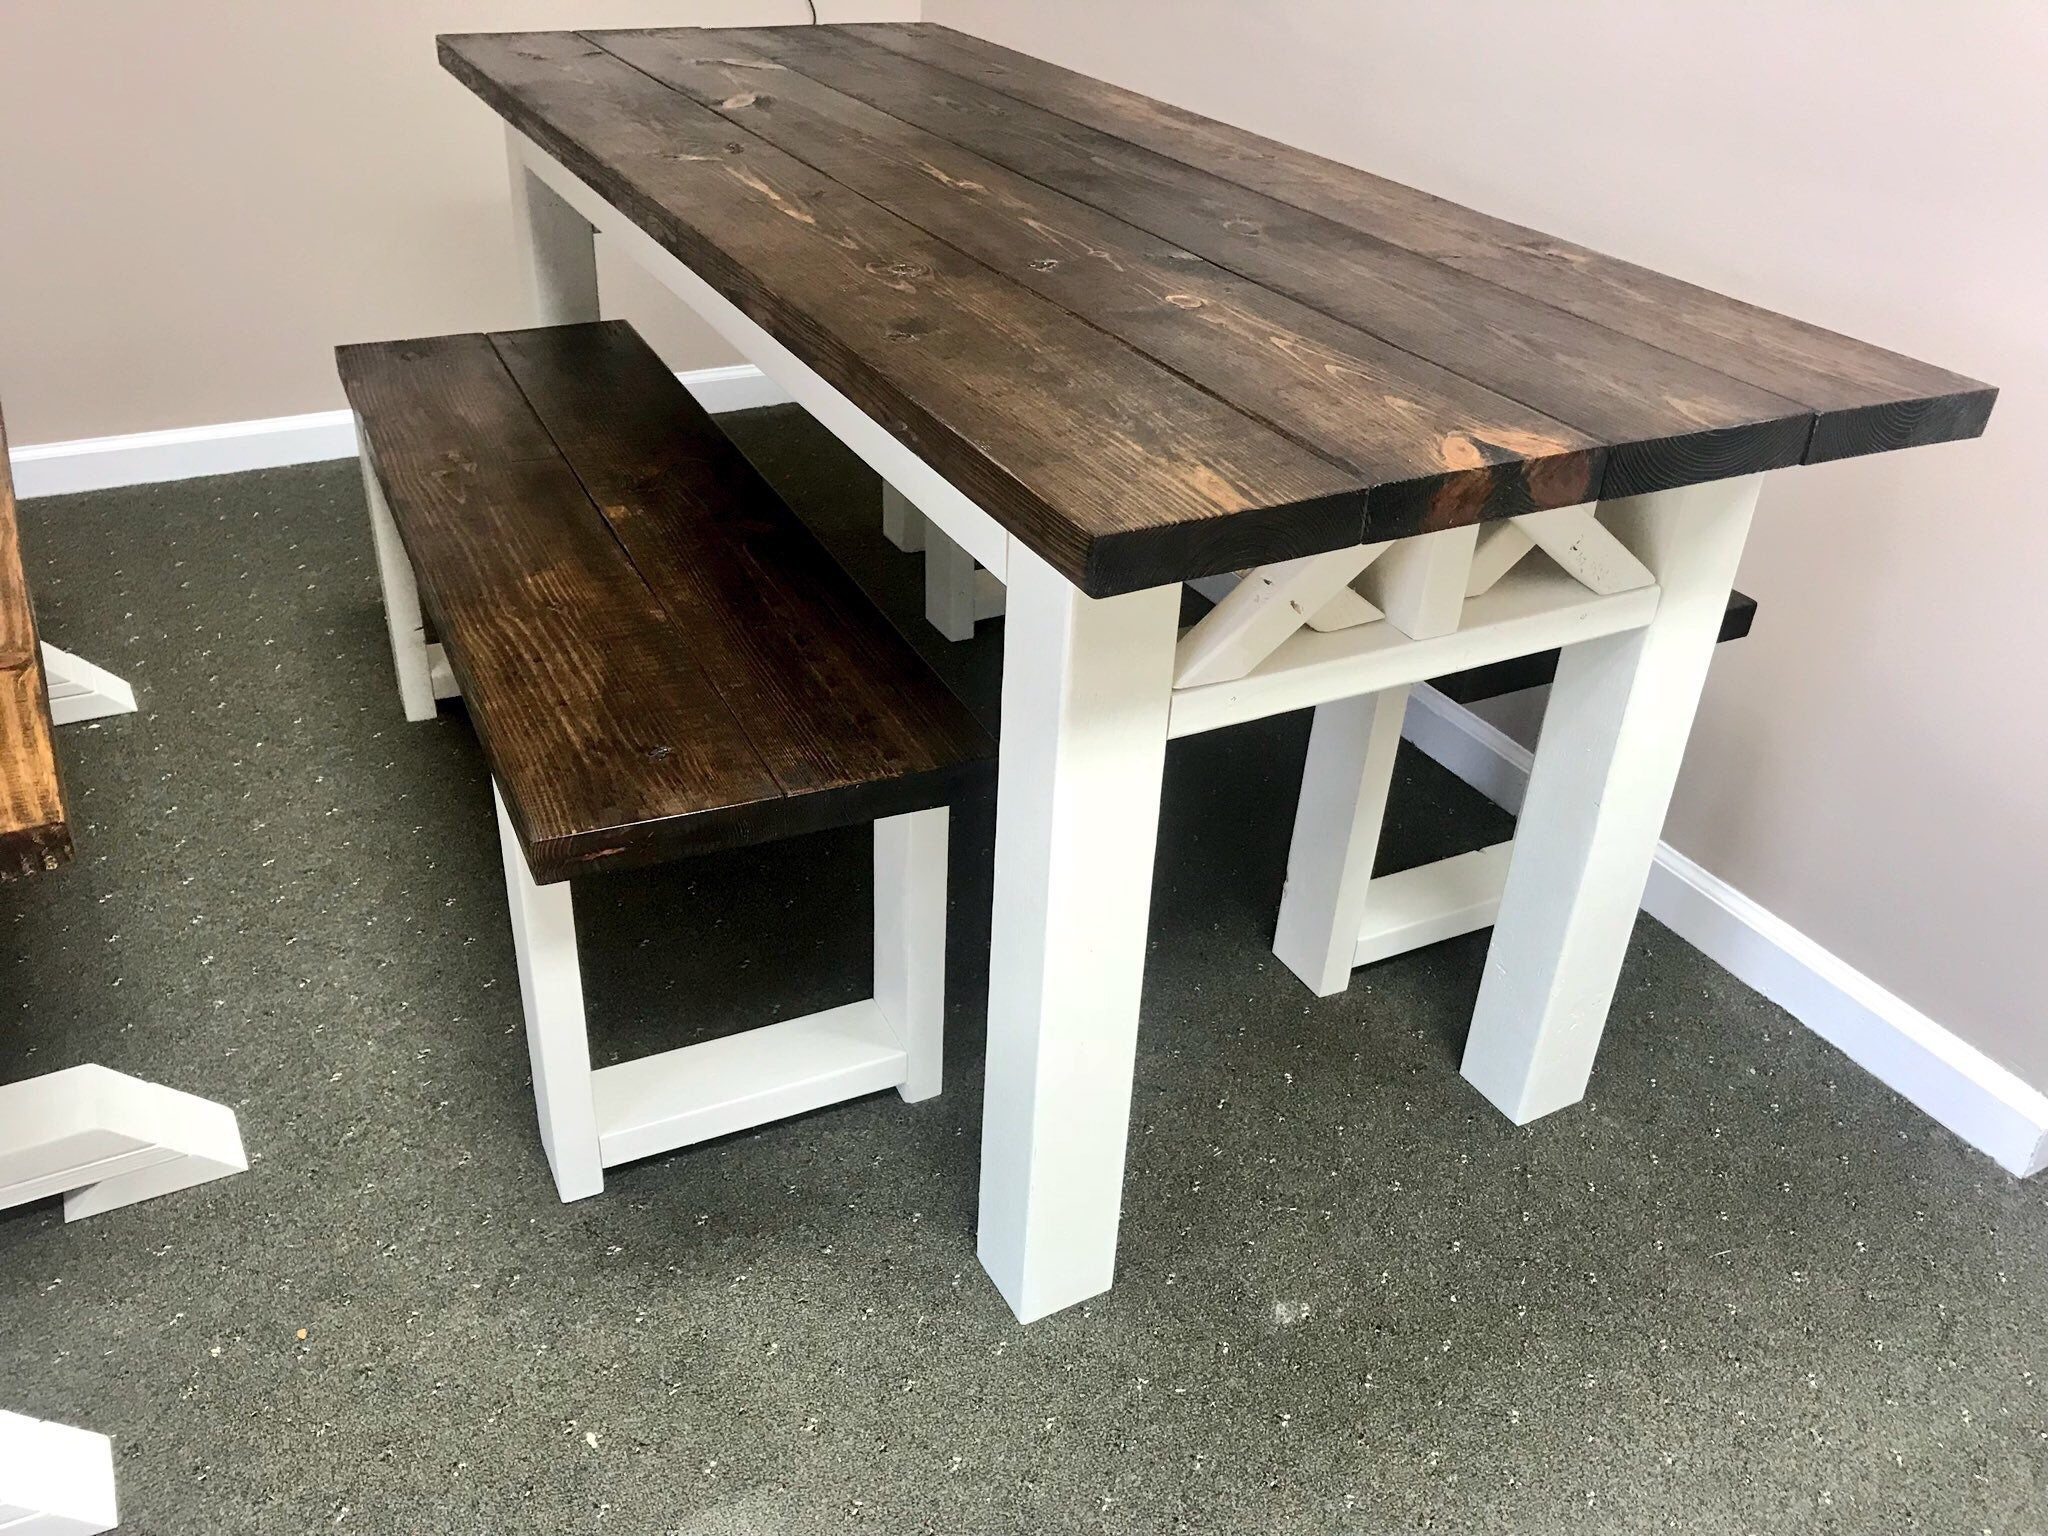 Rustic Wooden Farmhouse Table Set With Espresso Top And Antique - Farmhouse table with white base